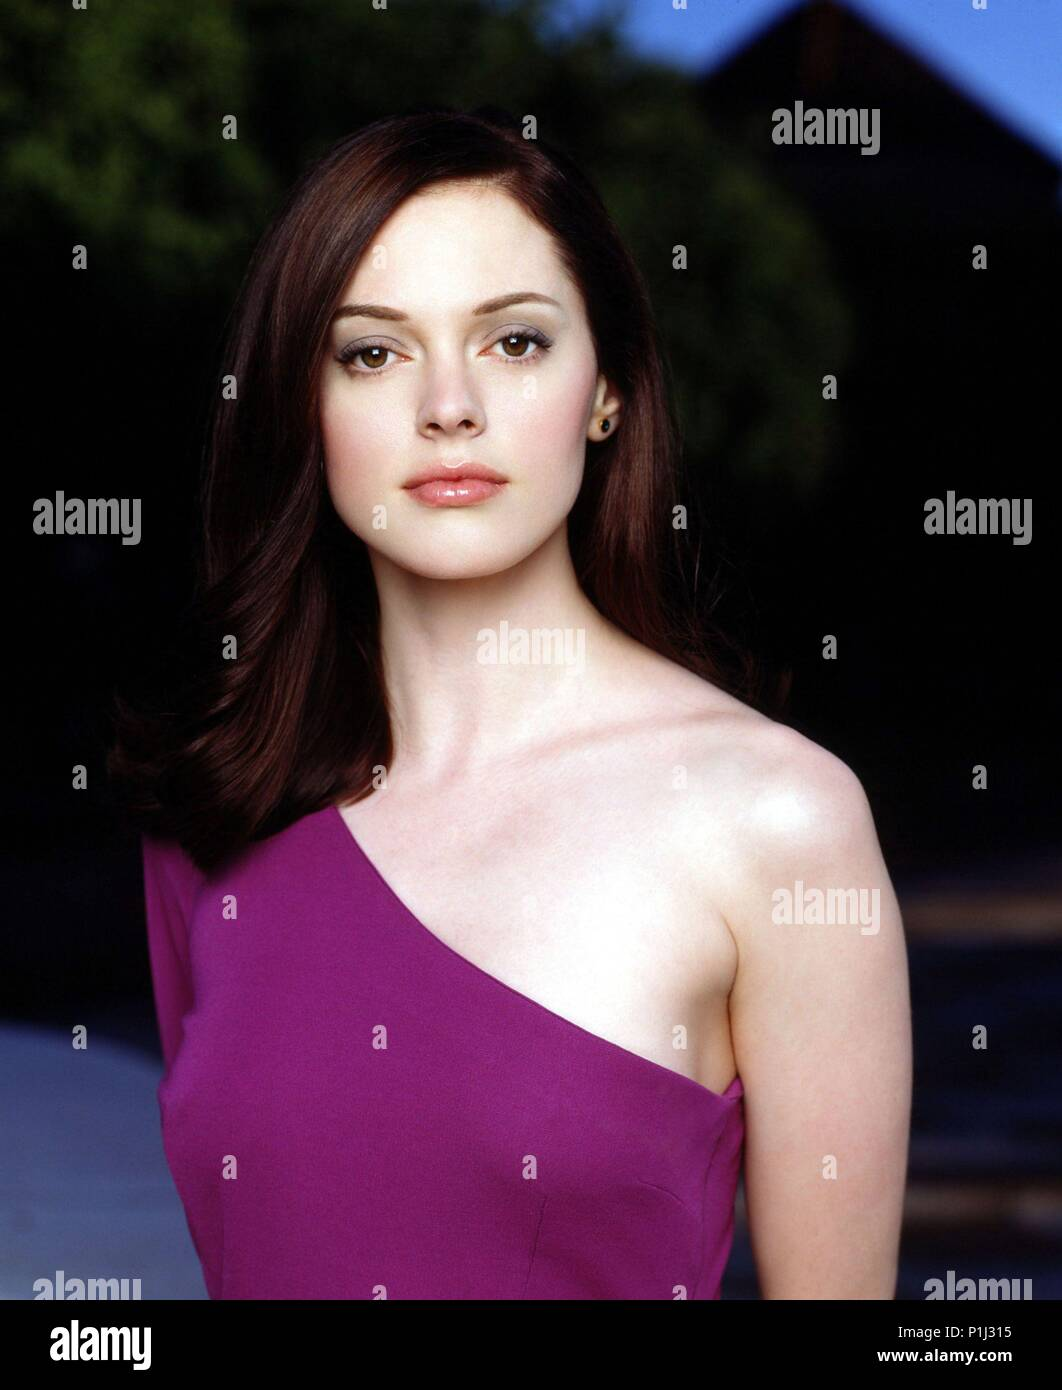 Charmed 1998 Stock Photos Charmed 1998 Stock Images Alamy